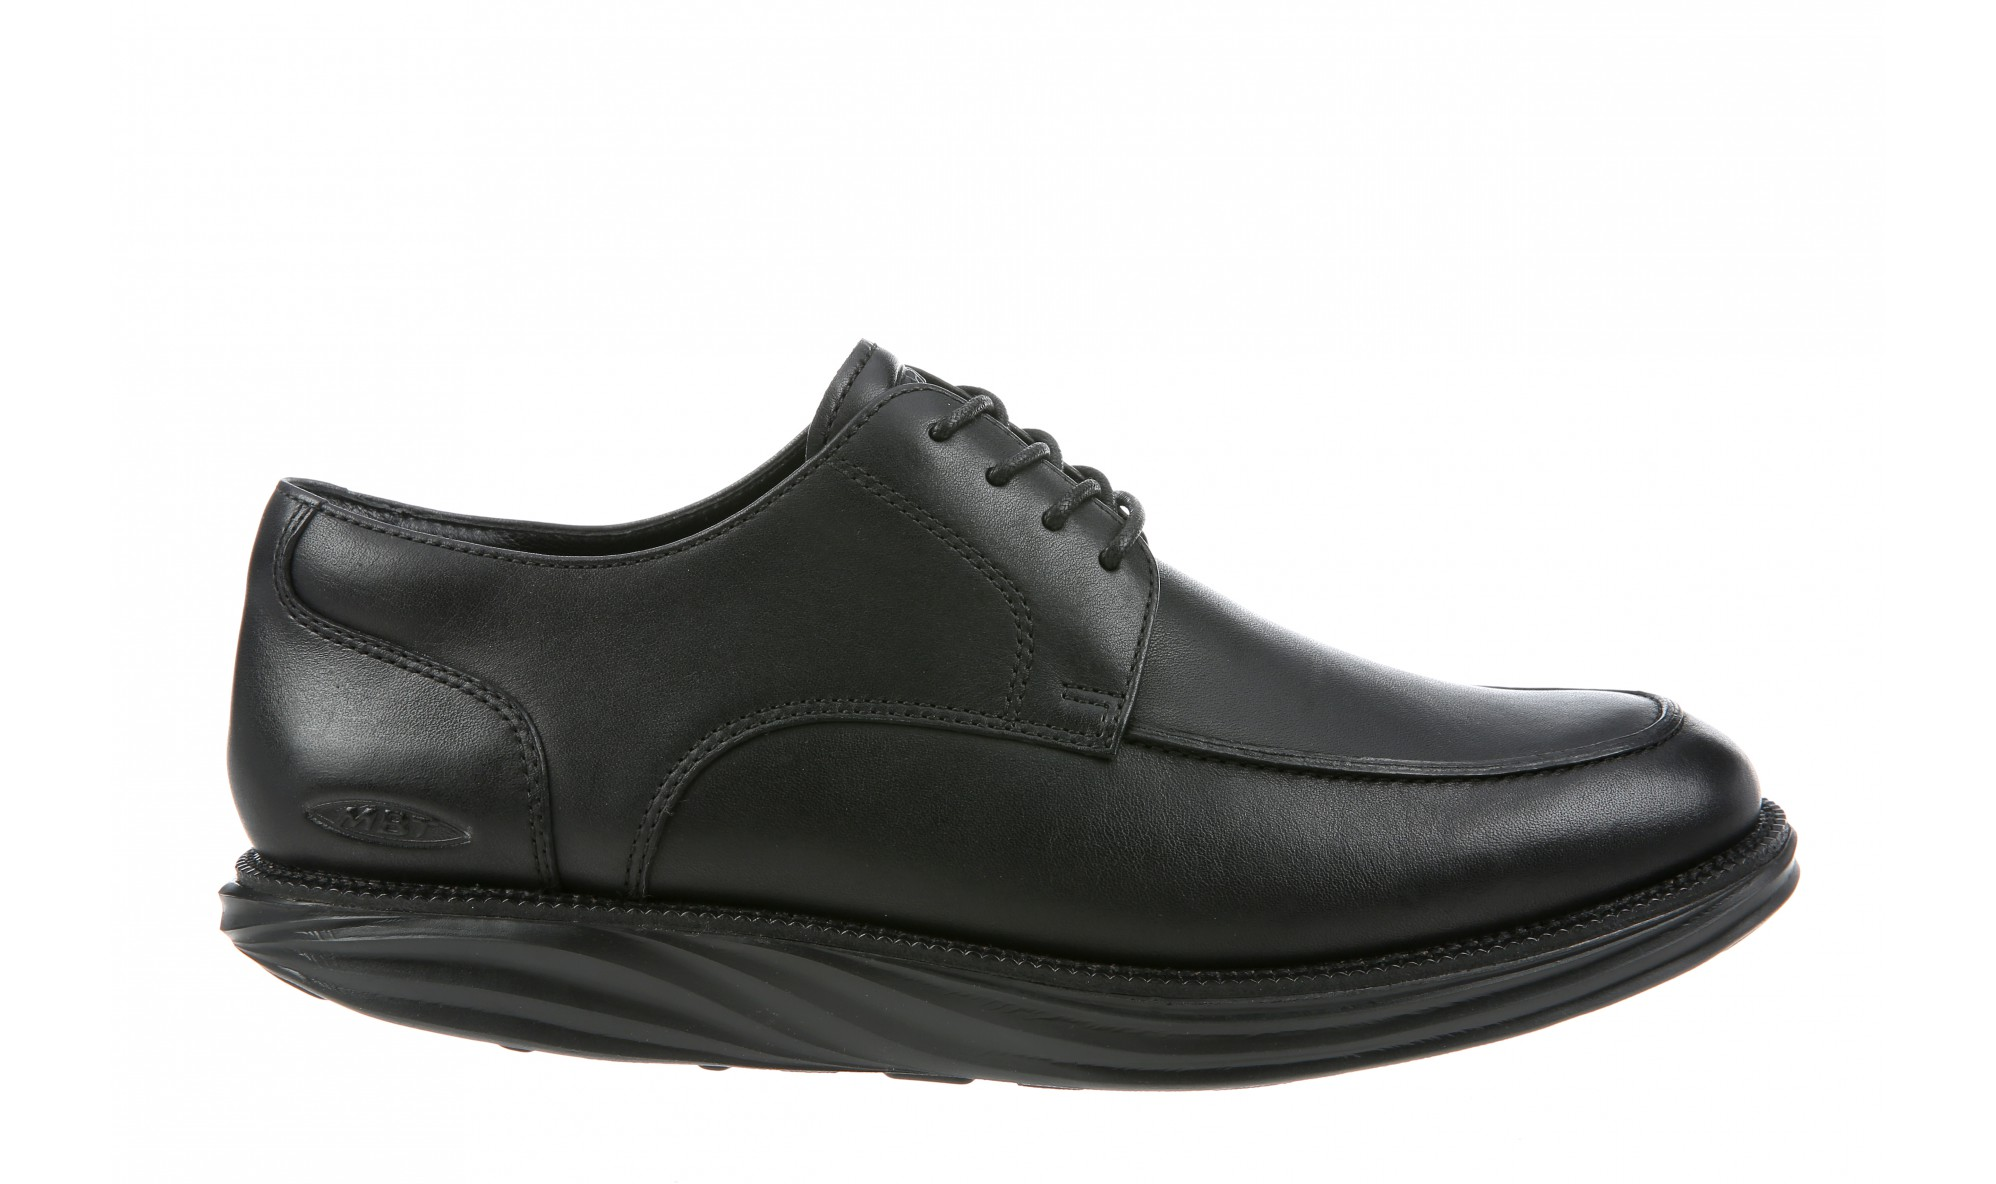 MBT Boston Lace Up - Men's - Black